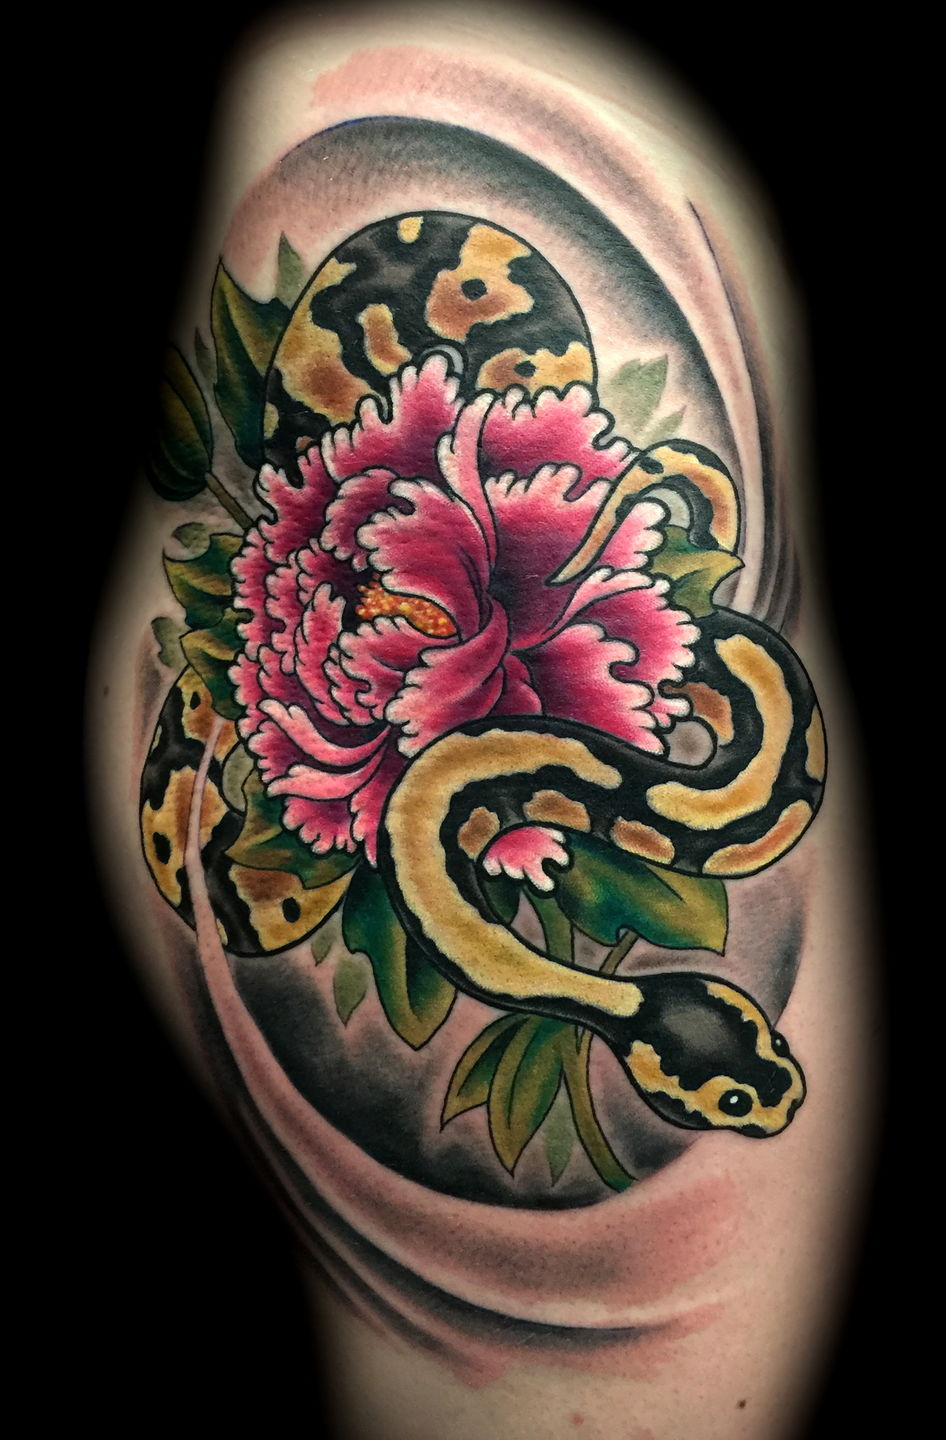 Las-vegas-tattoo-artist_joe-riley_snake_flower_hip_tattoo